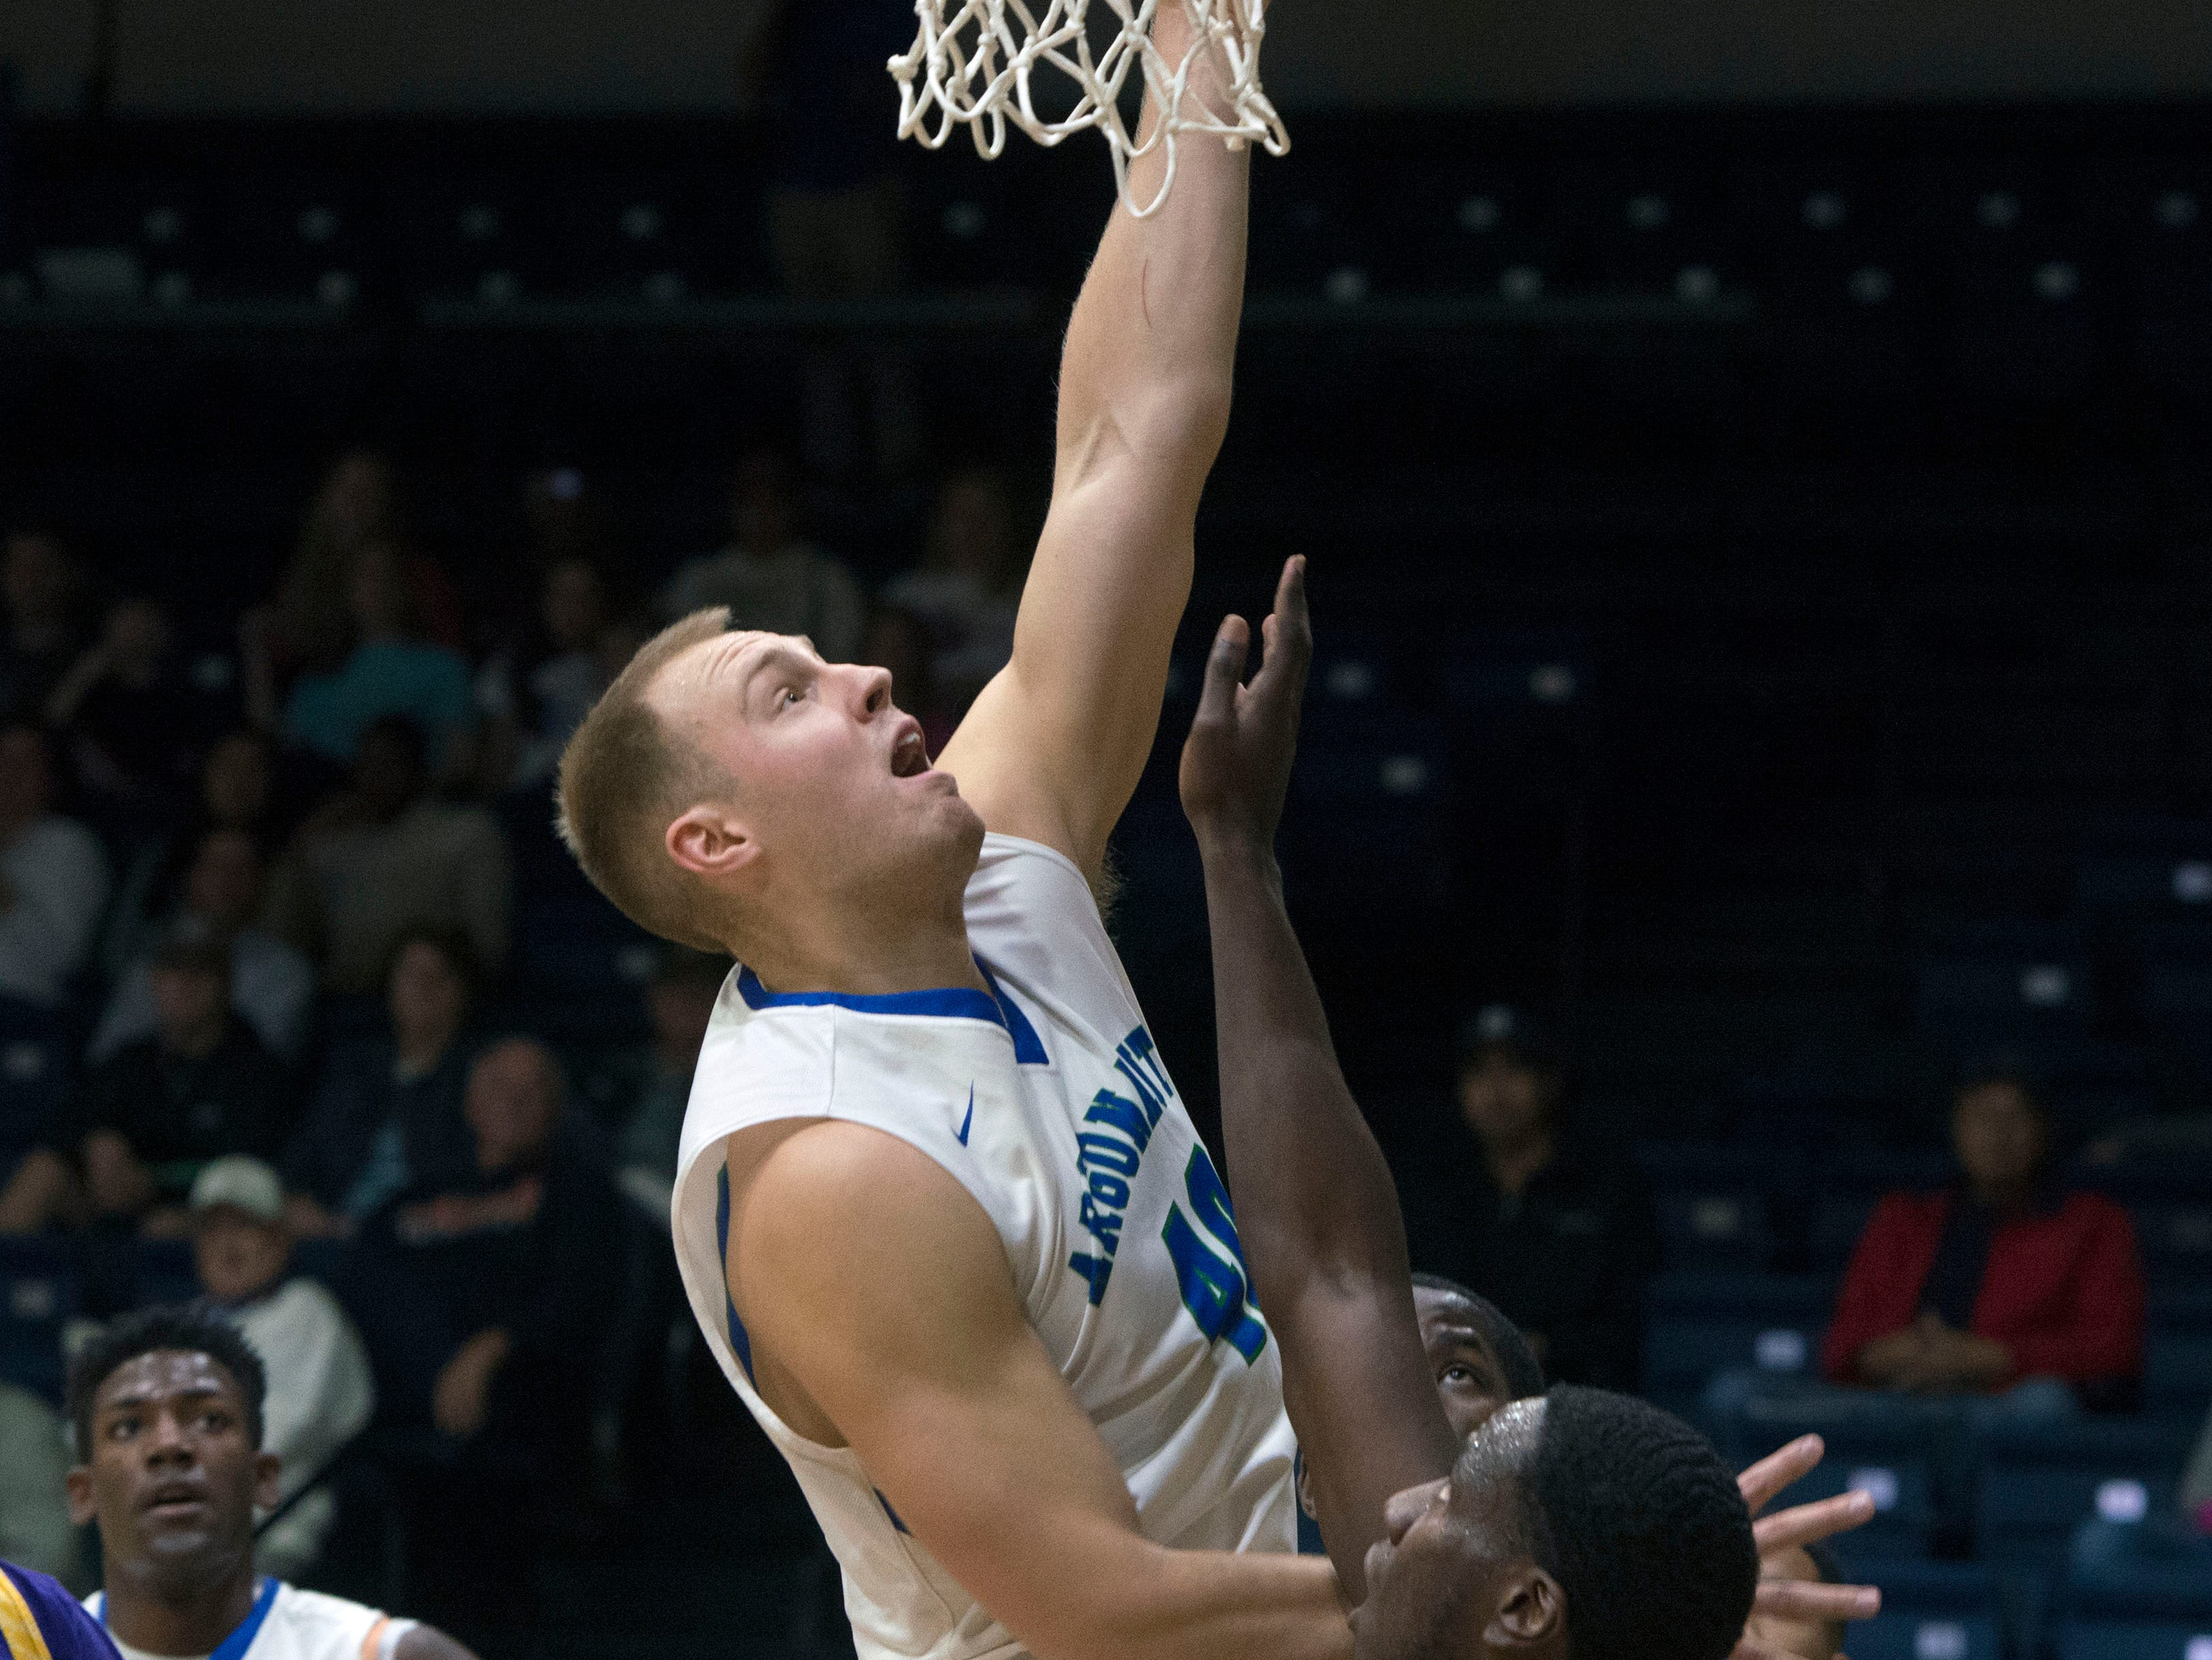 West Florida's Henri Ventoniemi goes up fro two as they take on the Montevallo Falcons Saturday, January 5, 2019 at the UWF Field House